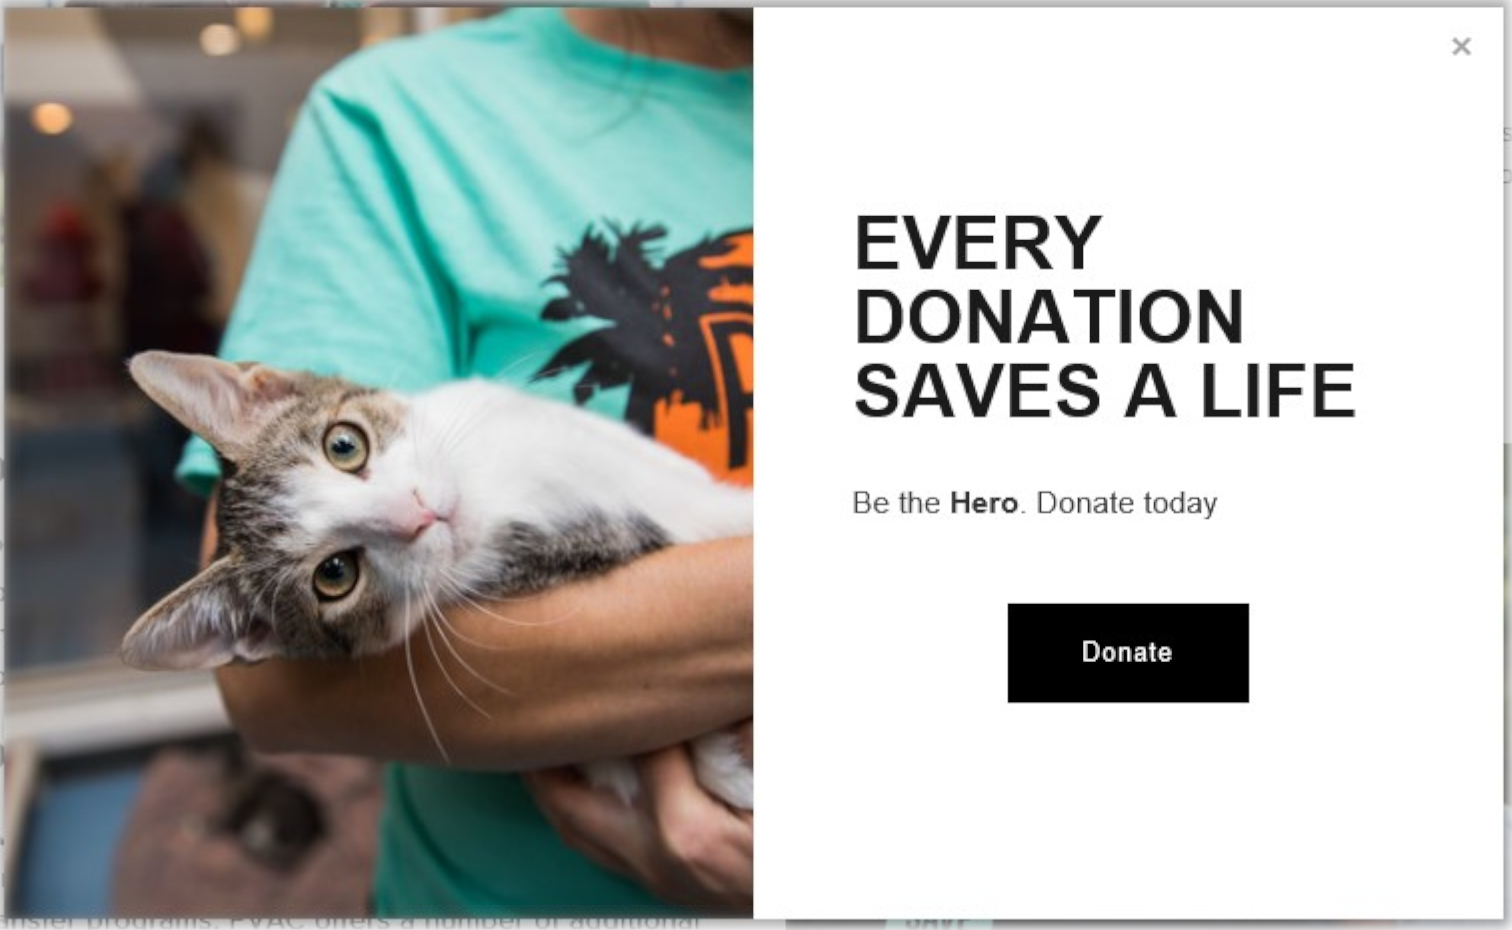 The Palm Valley Animal Center uses an exit intent pop-up to request donations to their organization. They include an image that should appeal to the reader's emotions as well.